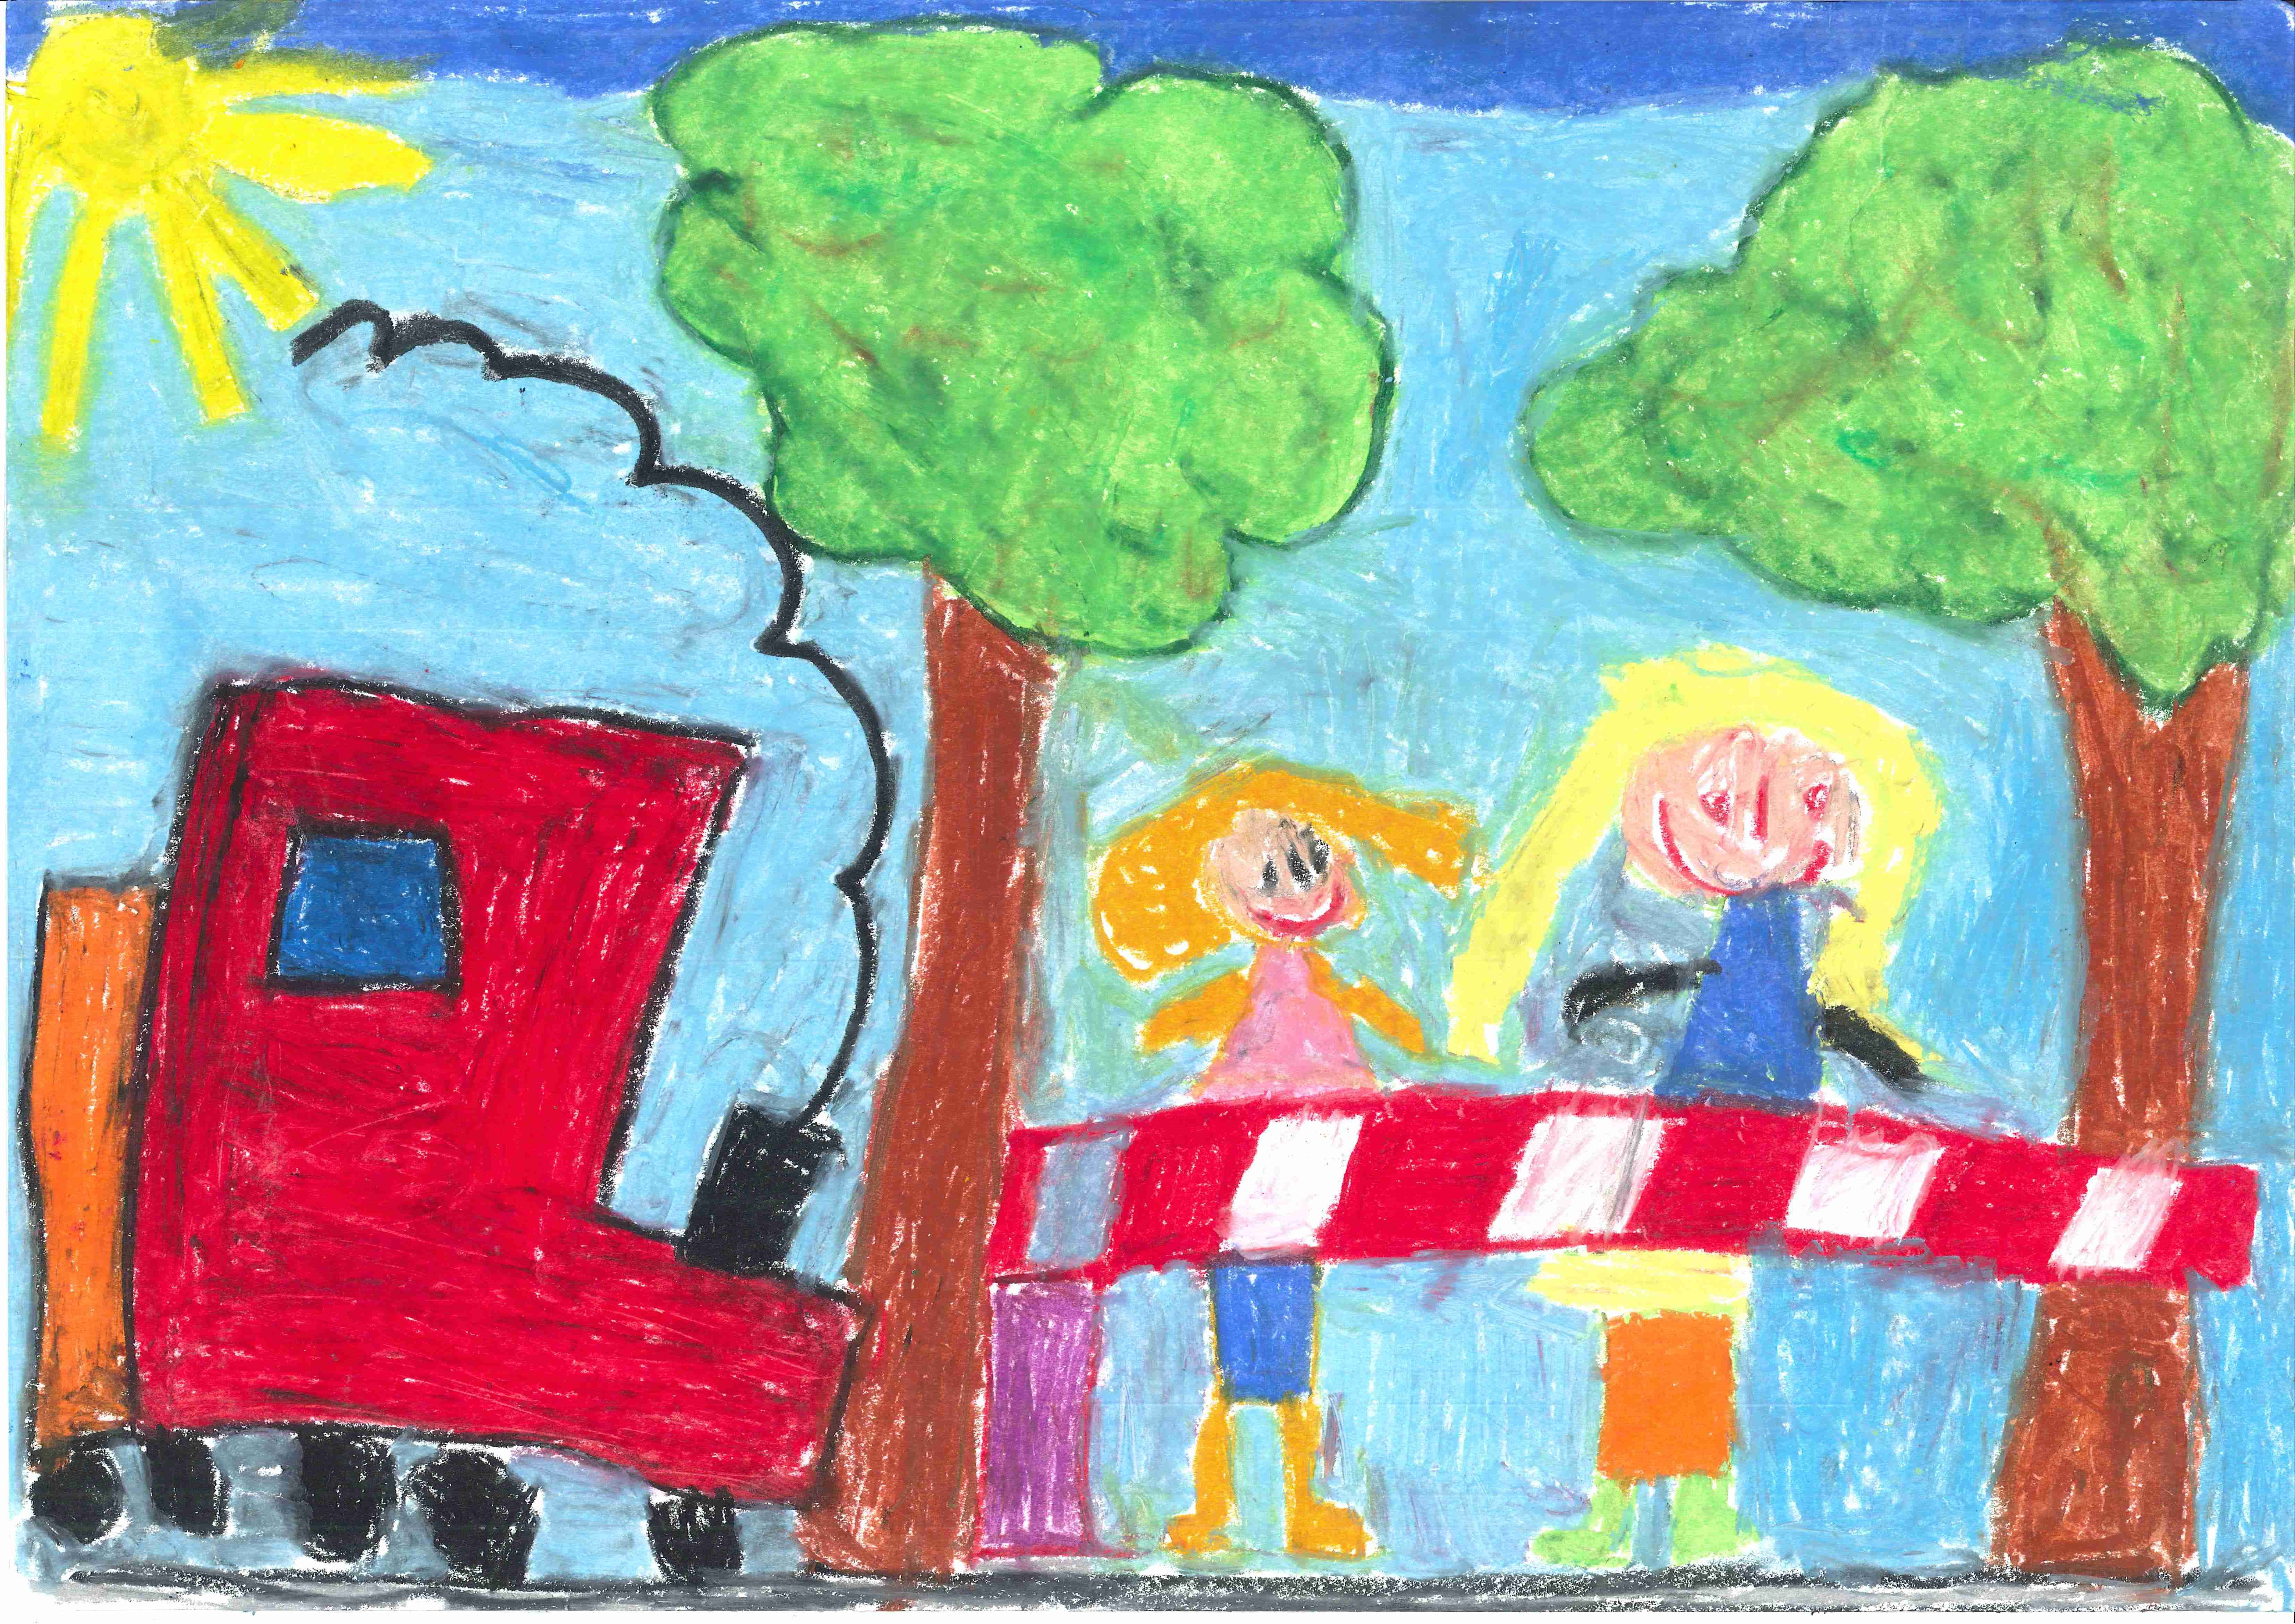 2nd international drawing contest for children on safety at level